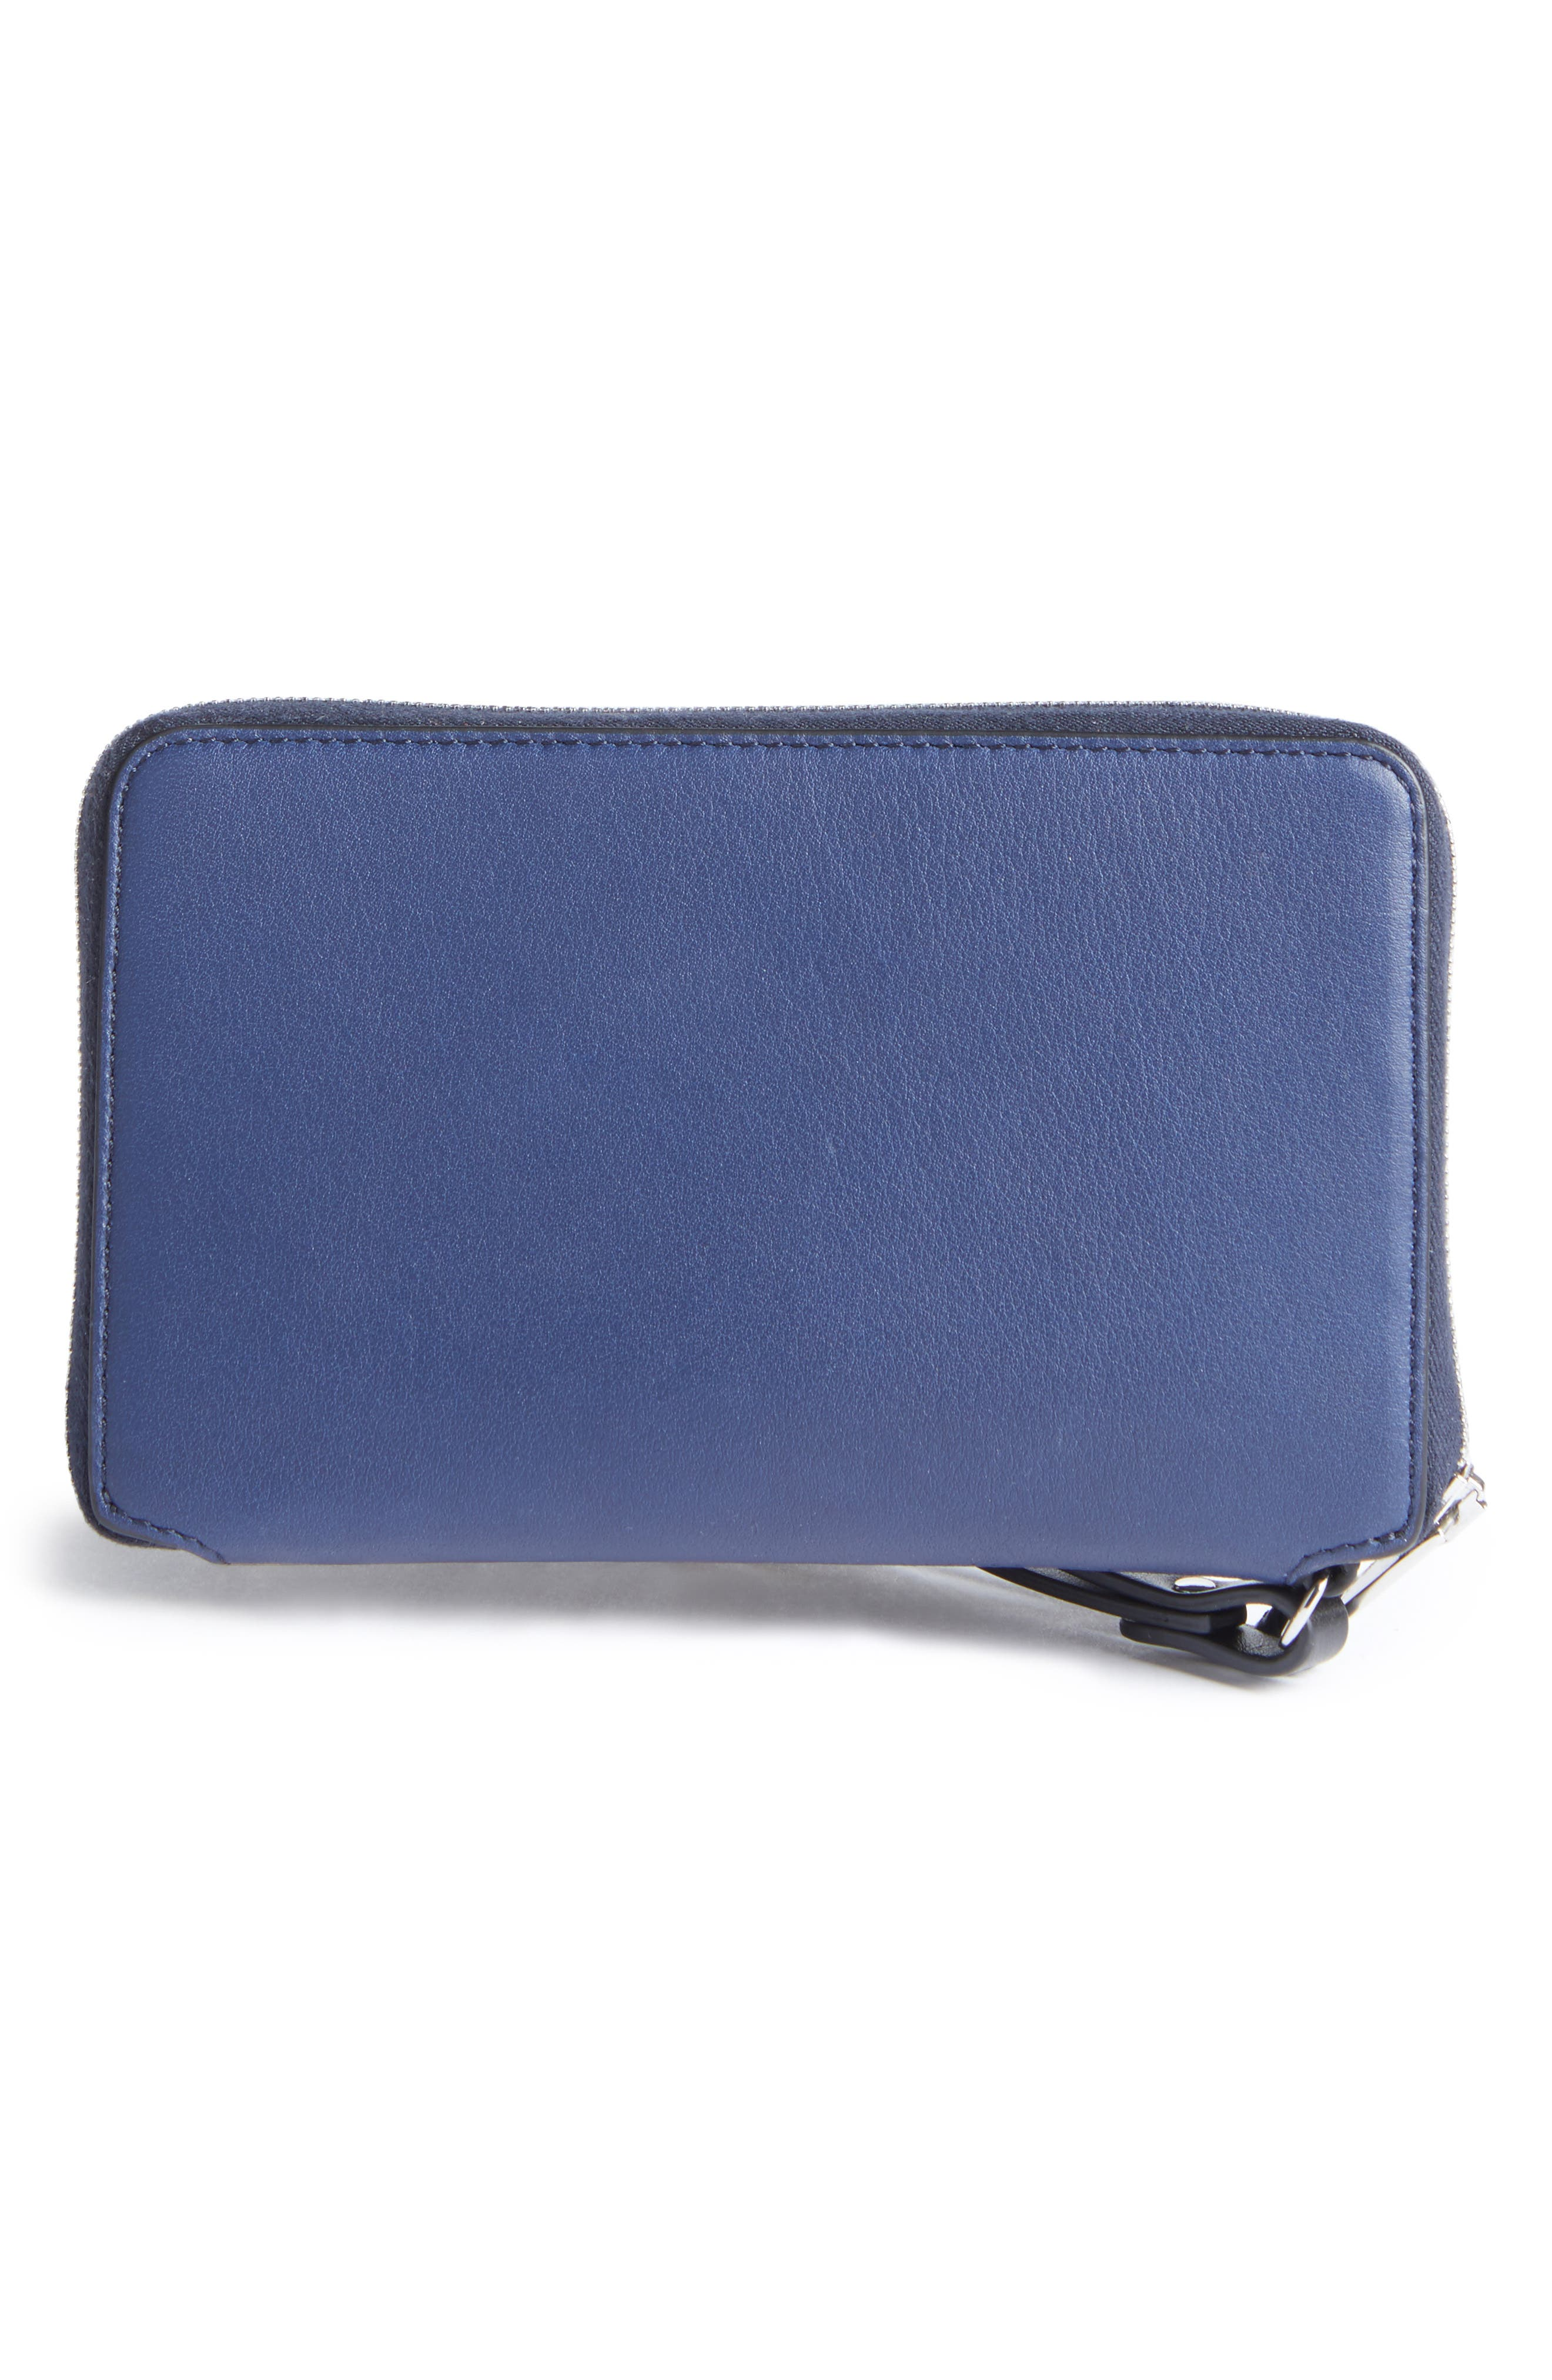 Devon Calfskin Smartphone Wallet,                             Alternate thumbnail 3, color,                             410